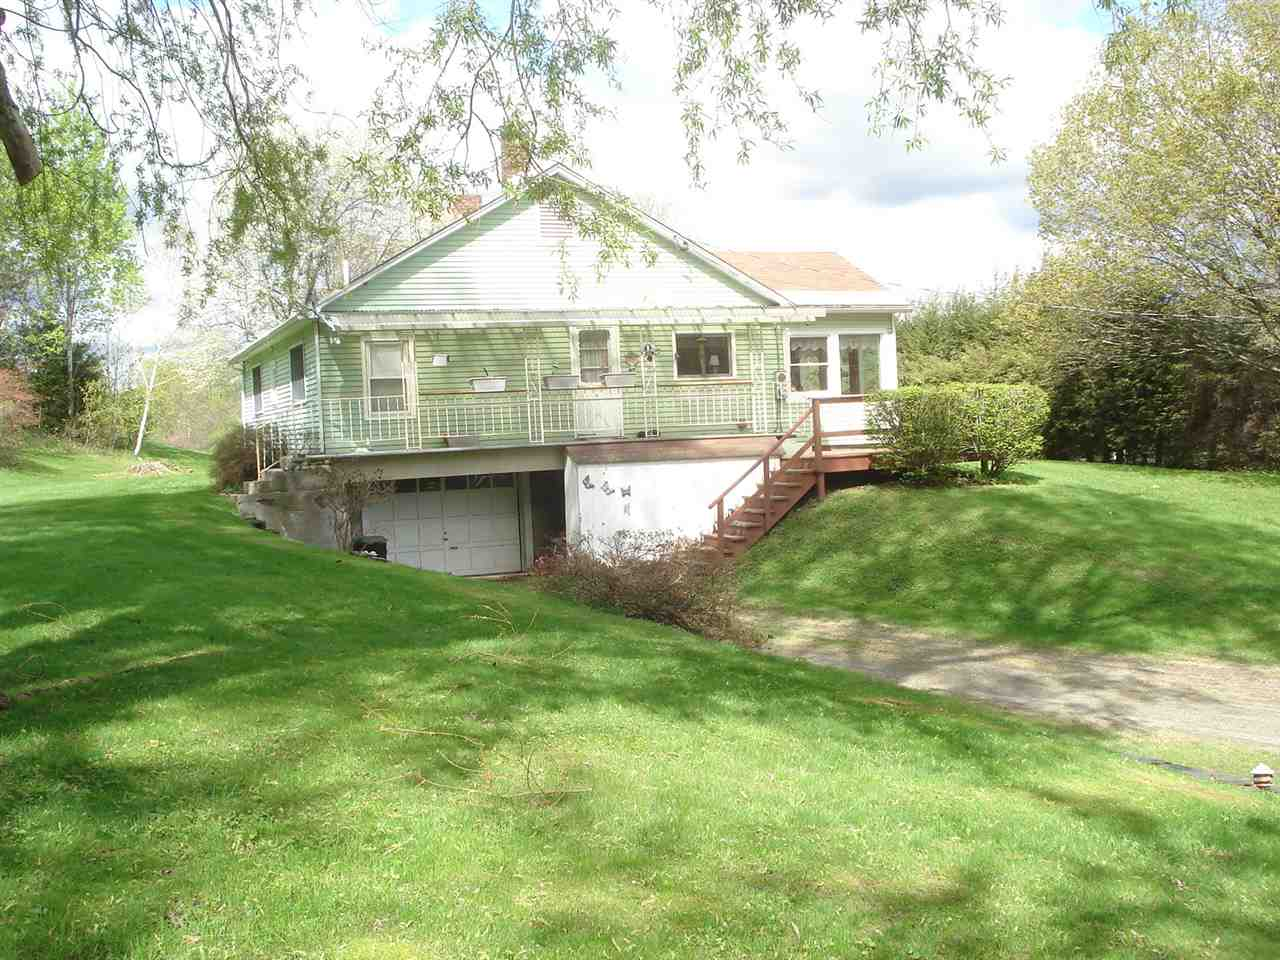 Village of Brownsville in Town of West Windsor VT  05037 Home for sale $List Price is $159,900